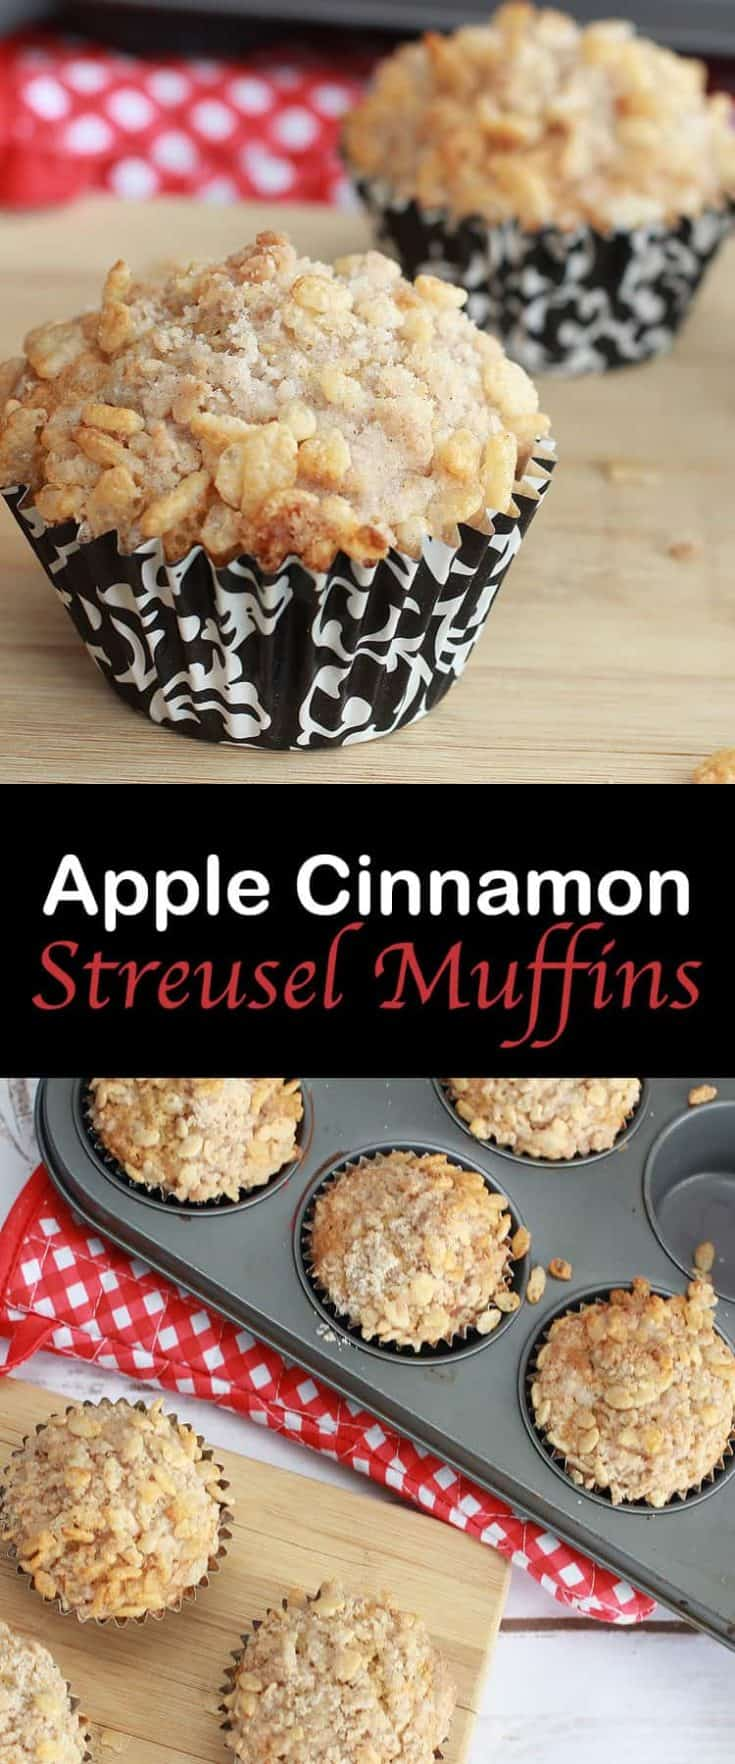 Apple Cinnamon Streusel Muffins are an easy and fun snack to send for school lunches, or for a great breakfast idea. #applemuffins #muffin #muffinrecipes